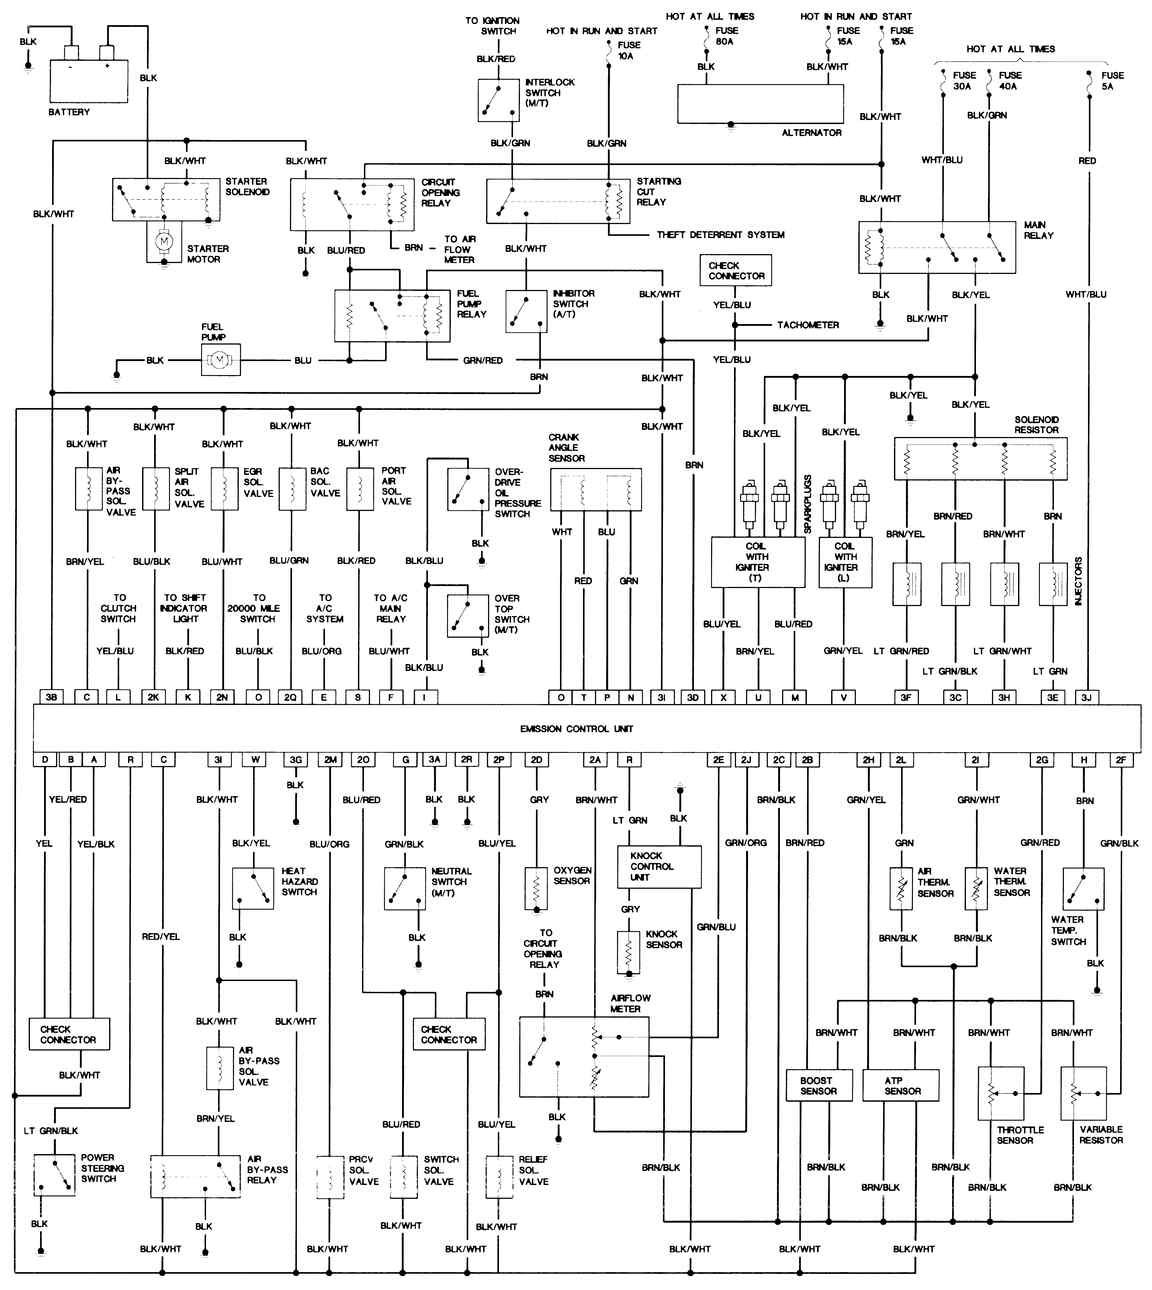 rx7 wiring diagram 11 9 asyaunited de 5-Way Guitar Switch Diagram rx7 wiring diagram